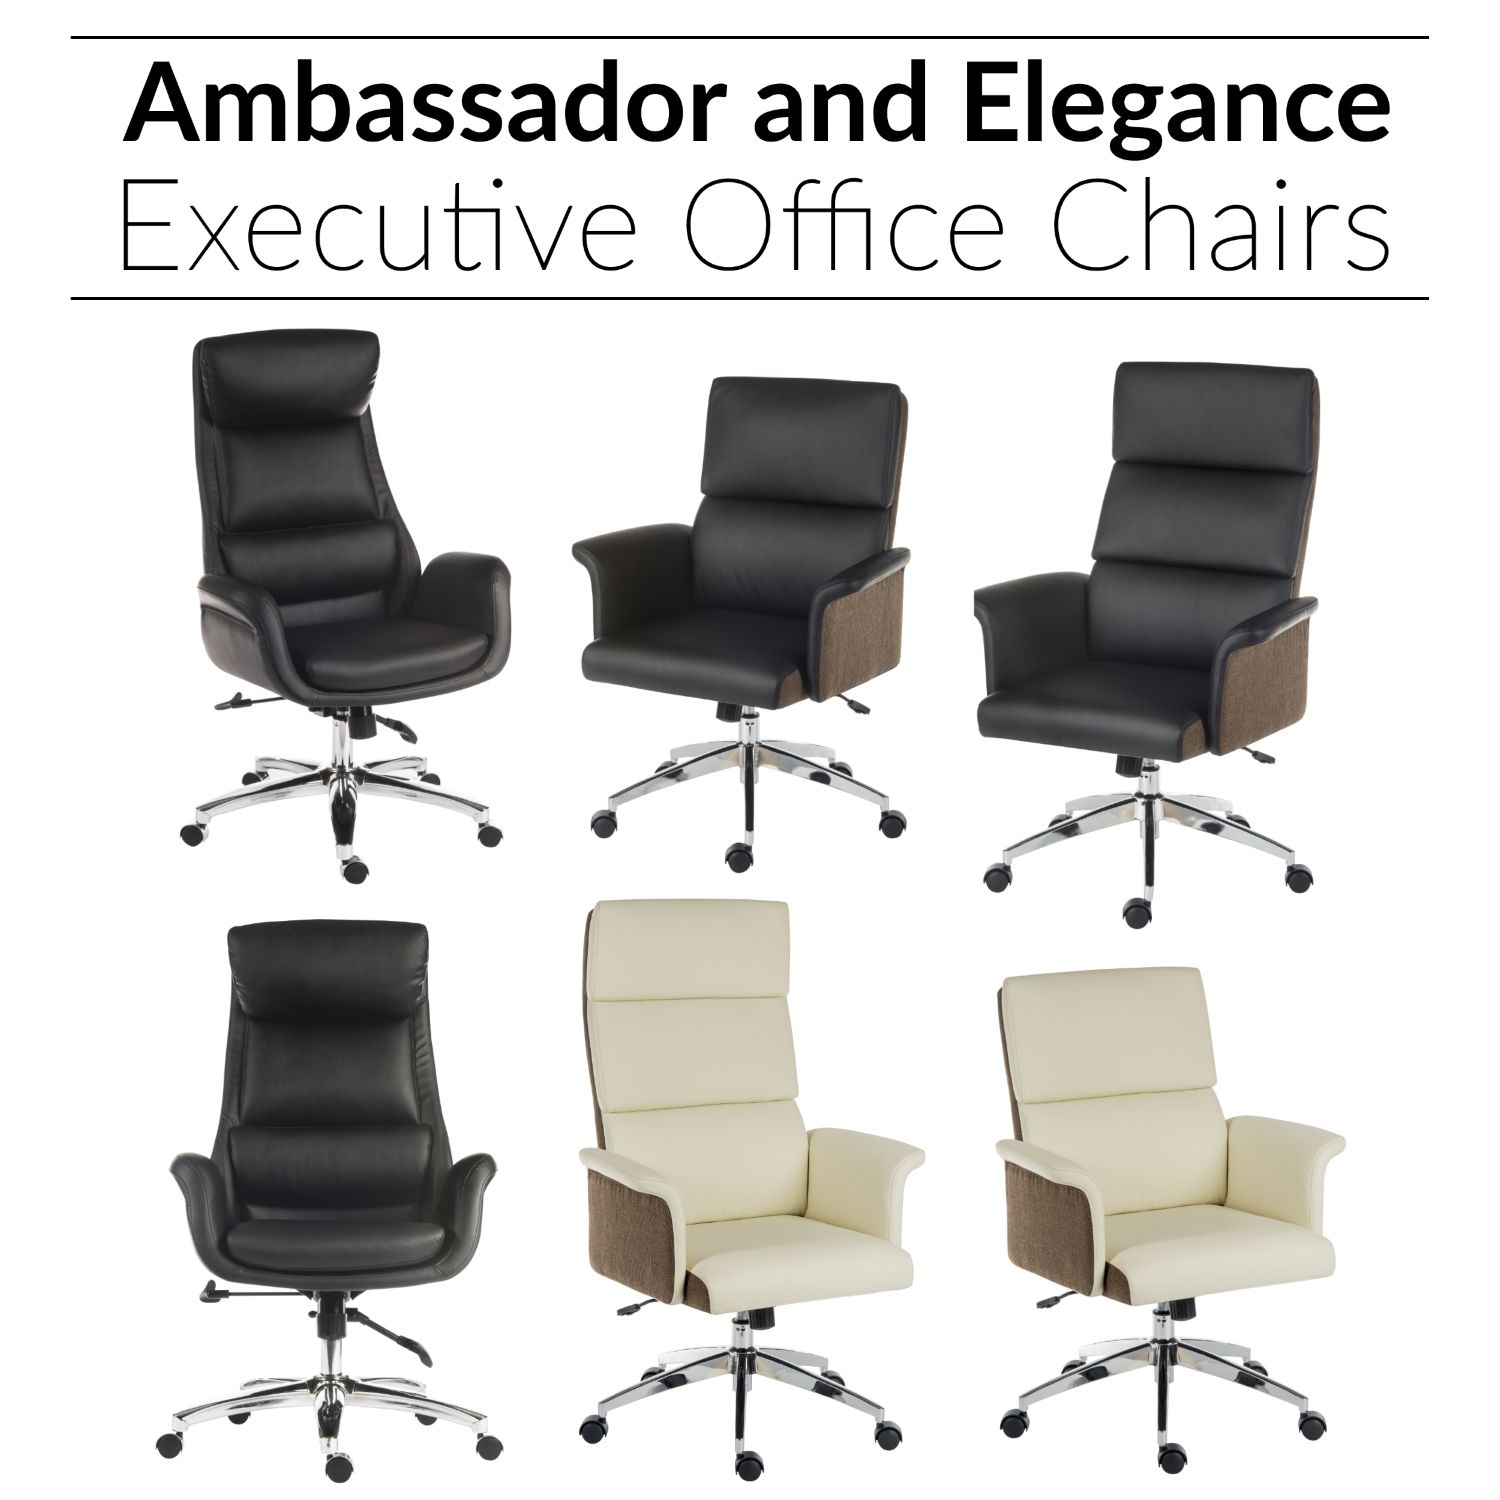 Ambassador And Elegance Office Chairs Scandinavian Office Chairs Reclining Office Chair Used Office Furniture